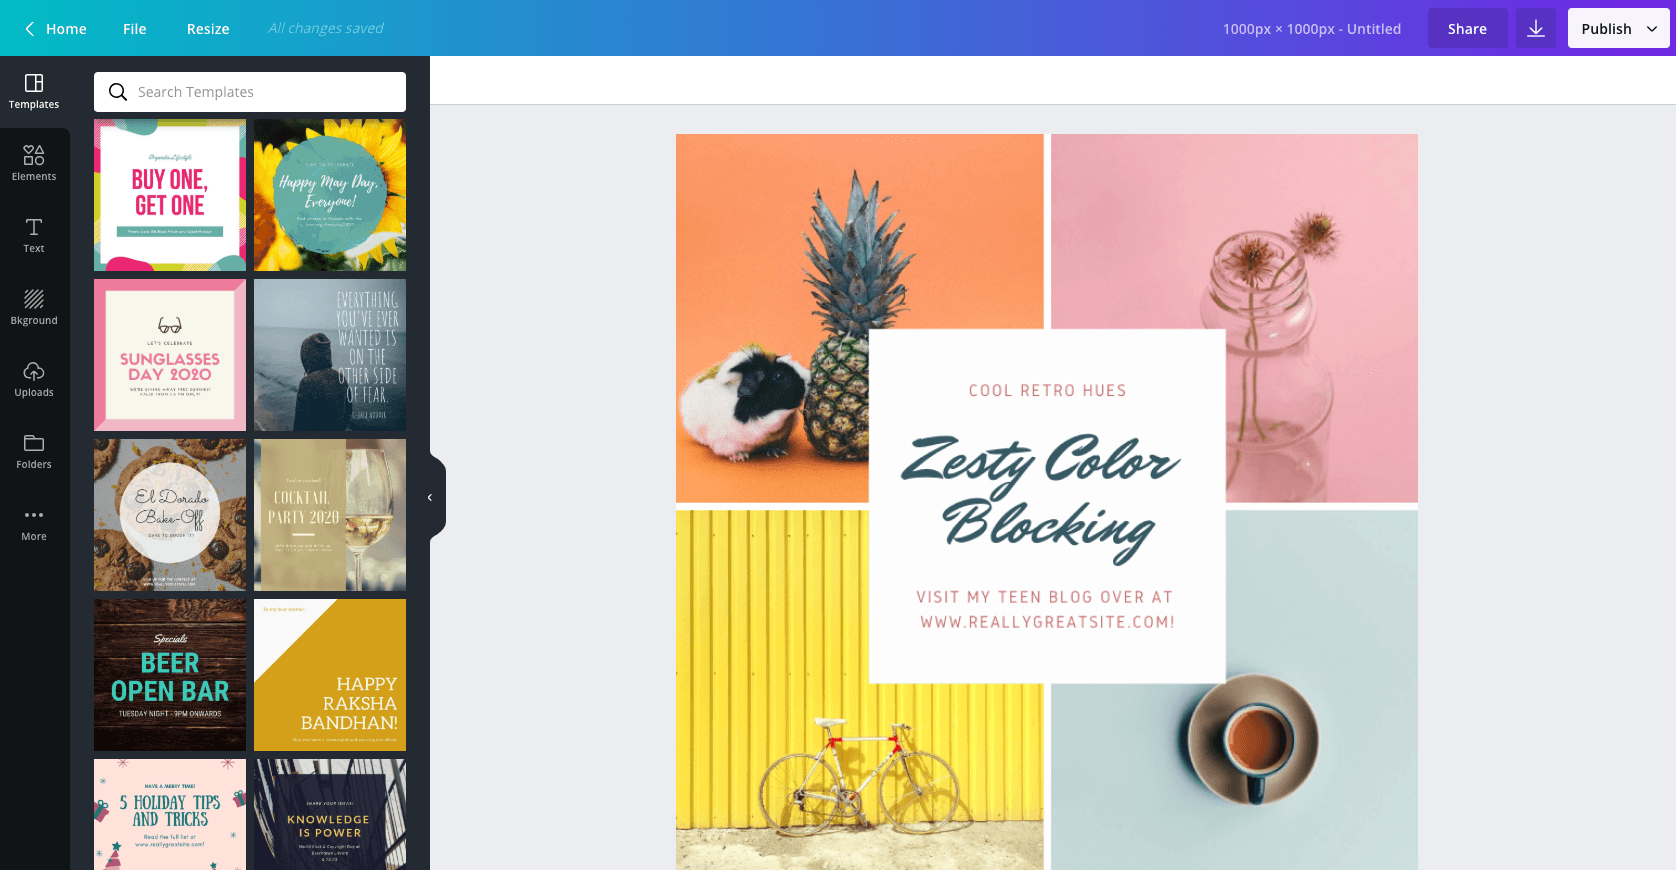 Try Canva - it's free